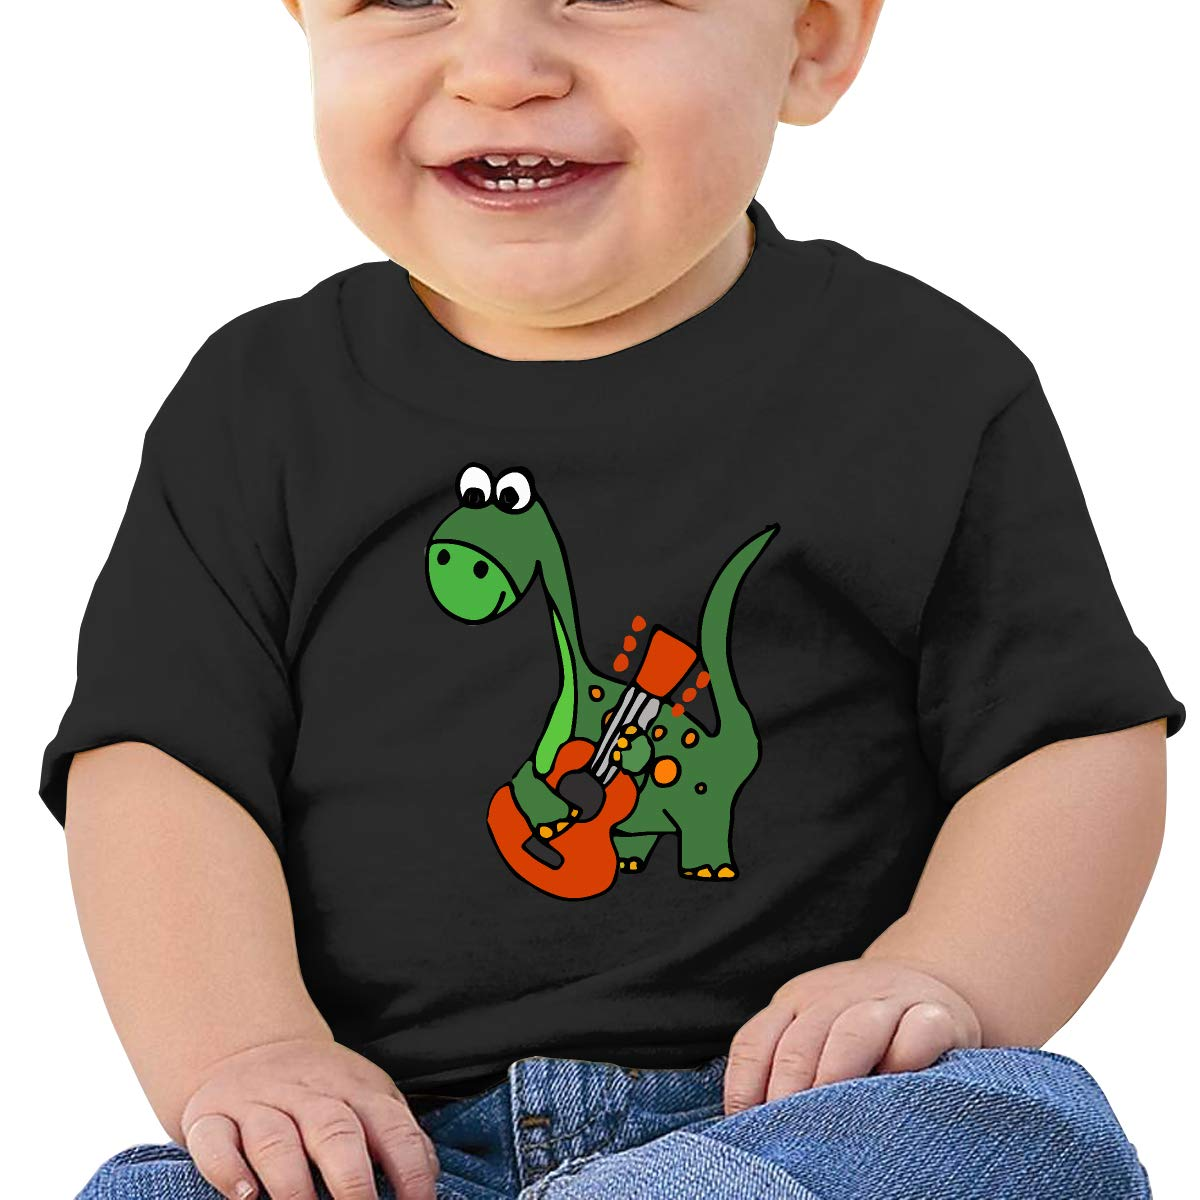 ZUGFGF-S3 Dinosaur Play Guitar Boy Girl Newborn Short Sleeve T-Shirt 6-24 Month Cotton Tops